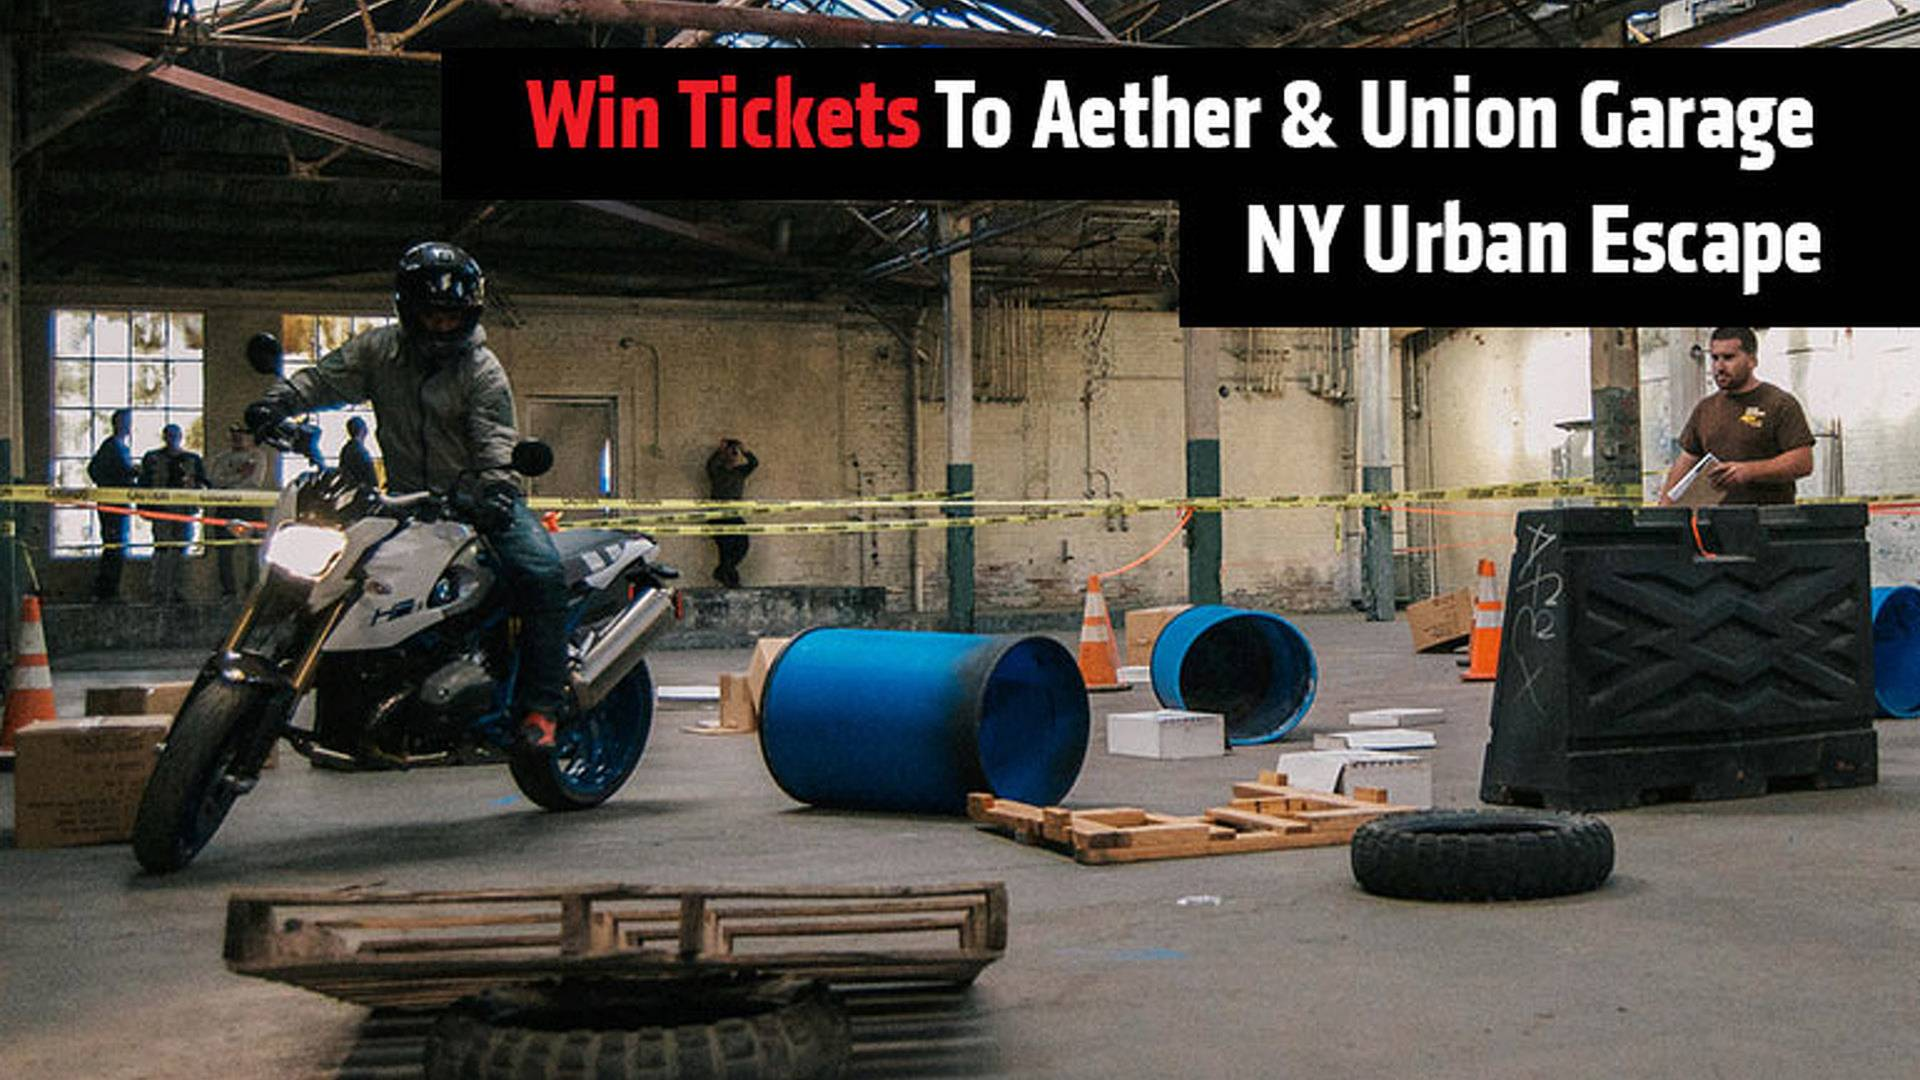 win tickets to aether union garage ny urban escapejpg - Union Garage